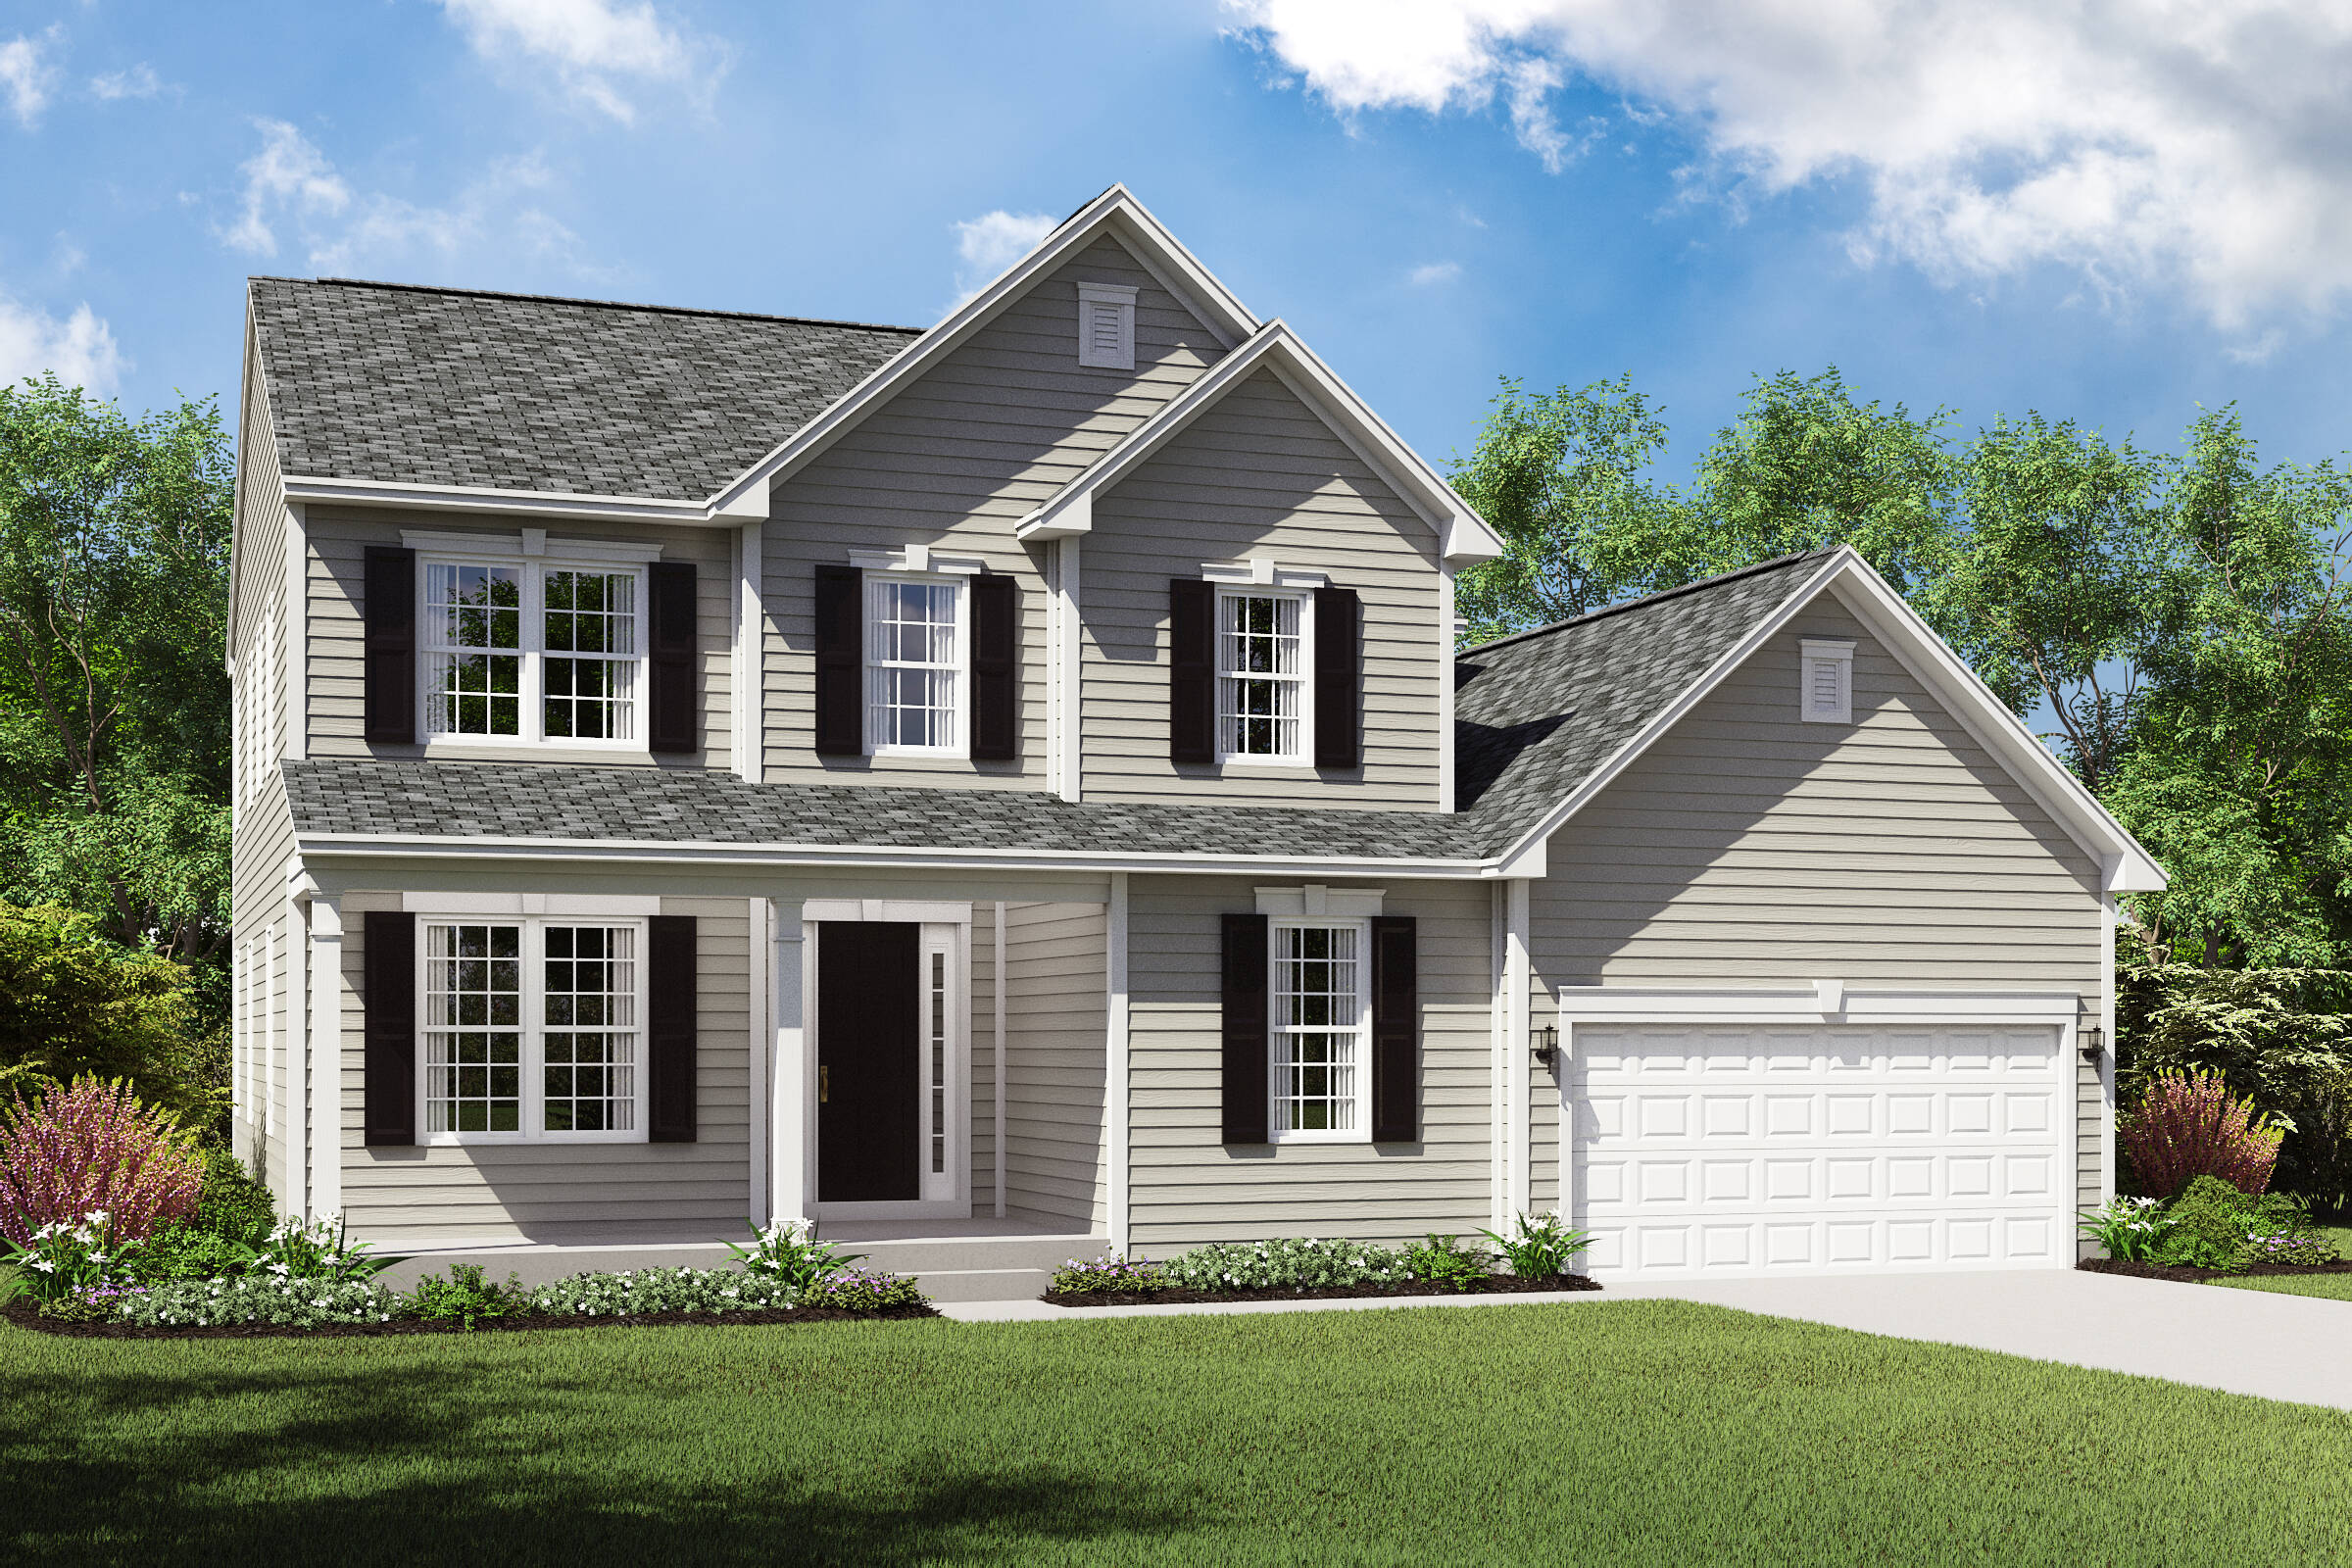 hopewell cs new single family homes northeast ohio